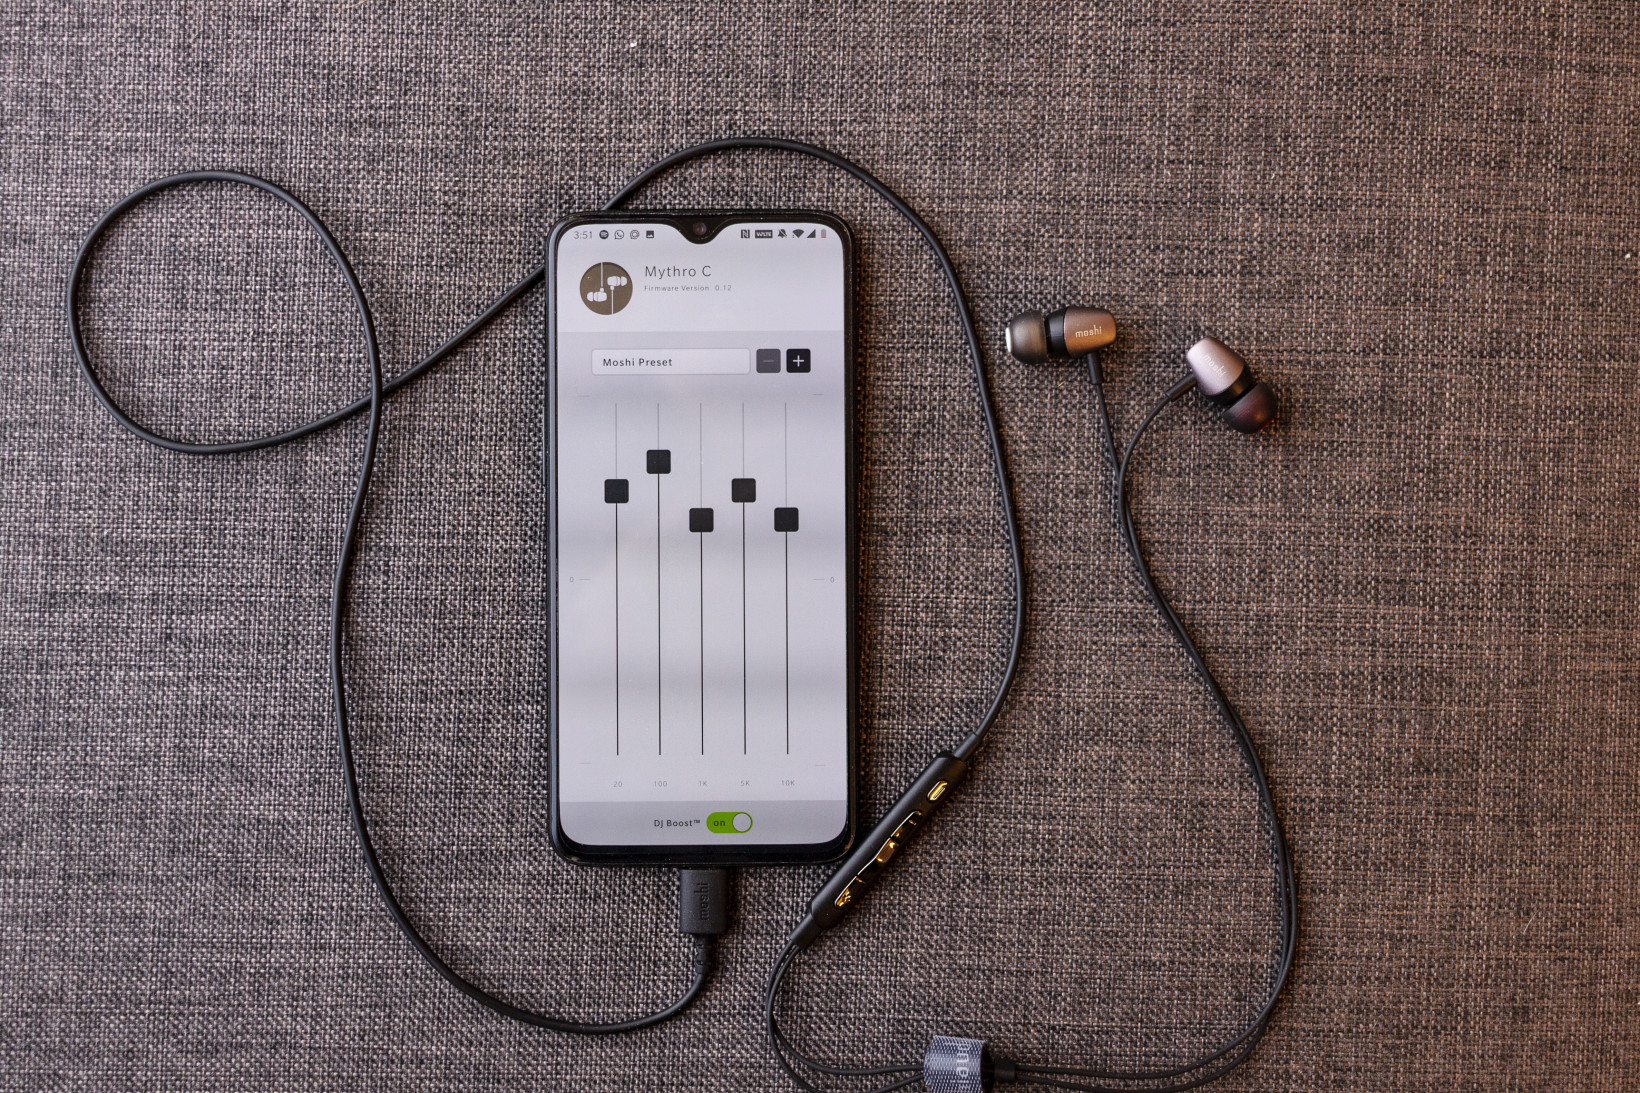 Moshi's Android app lets you customize an EQ setting to use with your Mythro C earphones